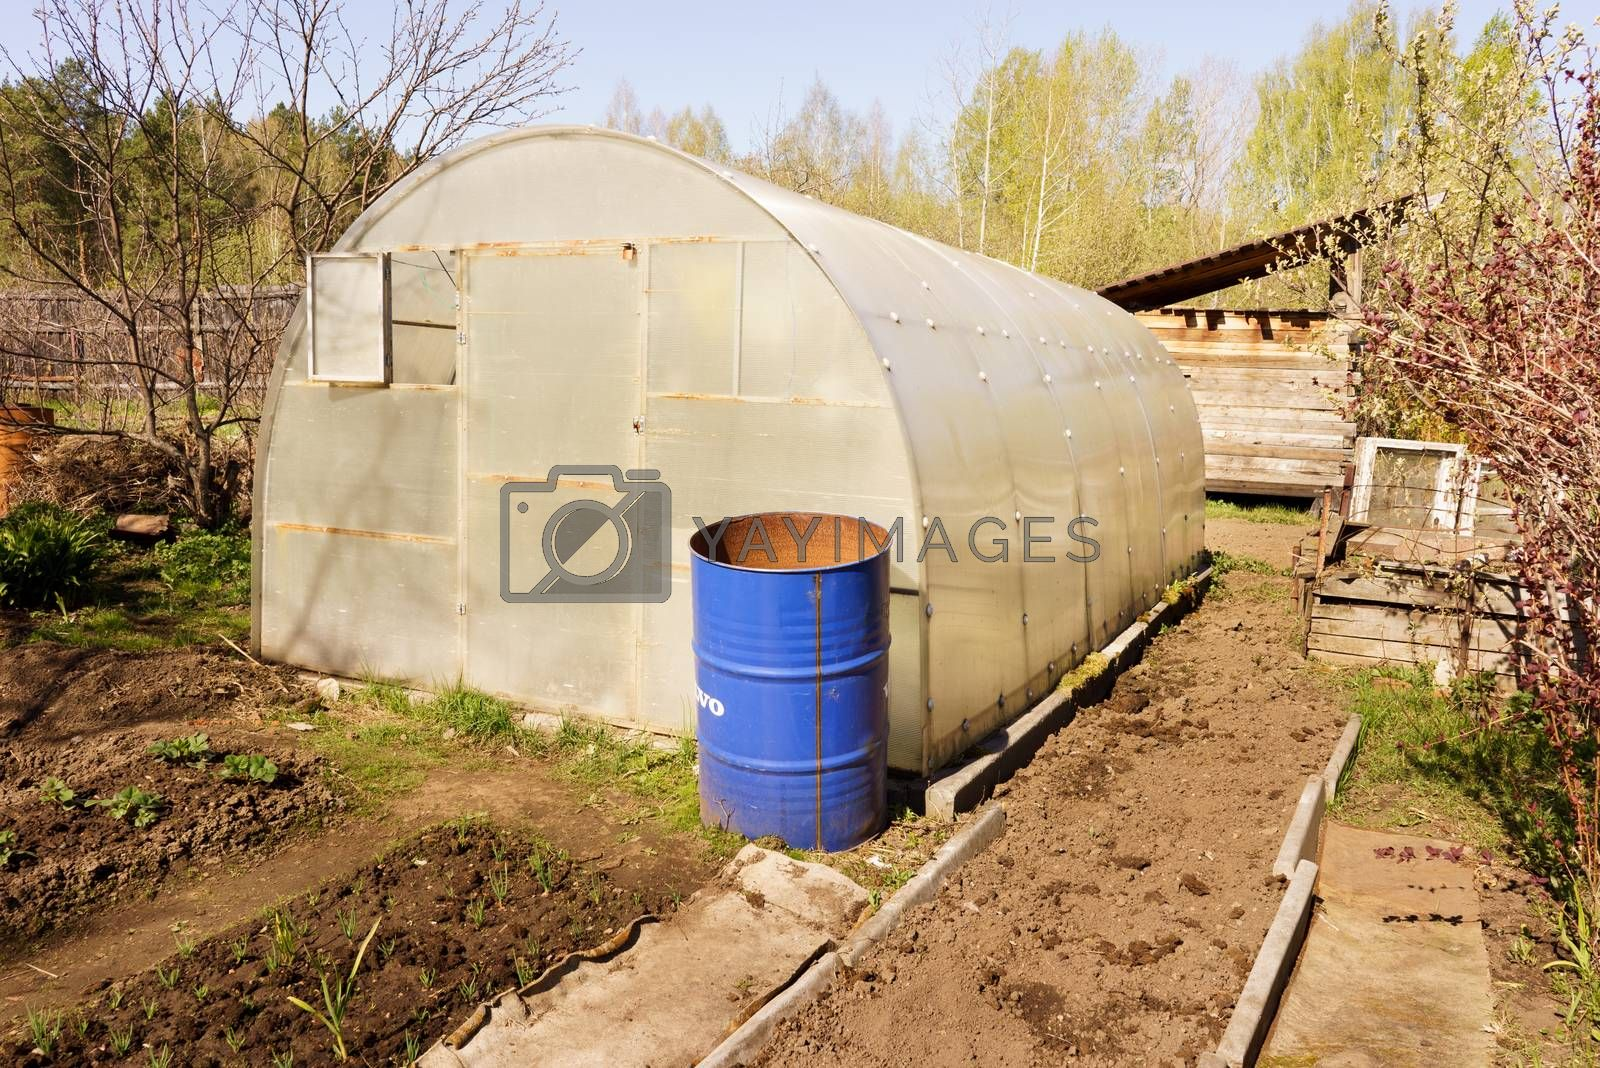 A small greenhouse with air vents in the garden